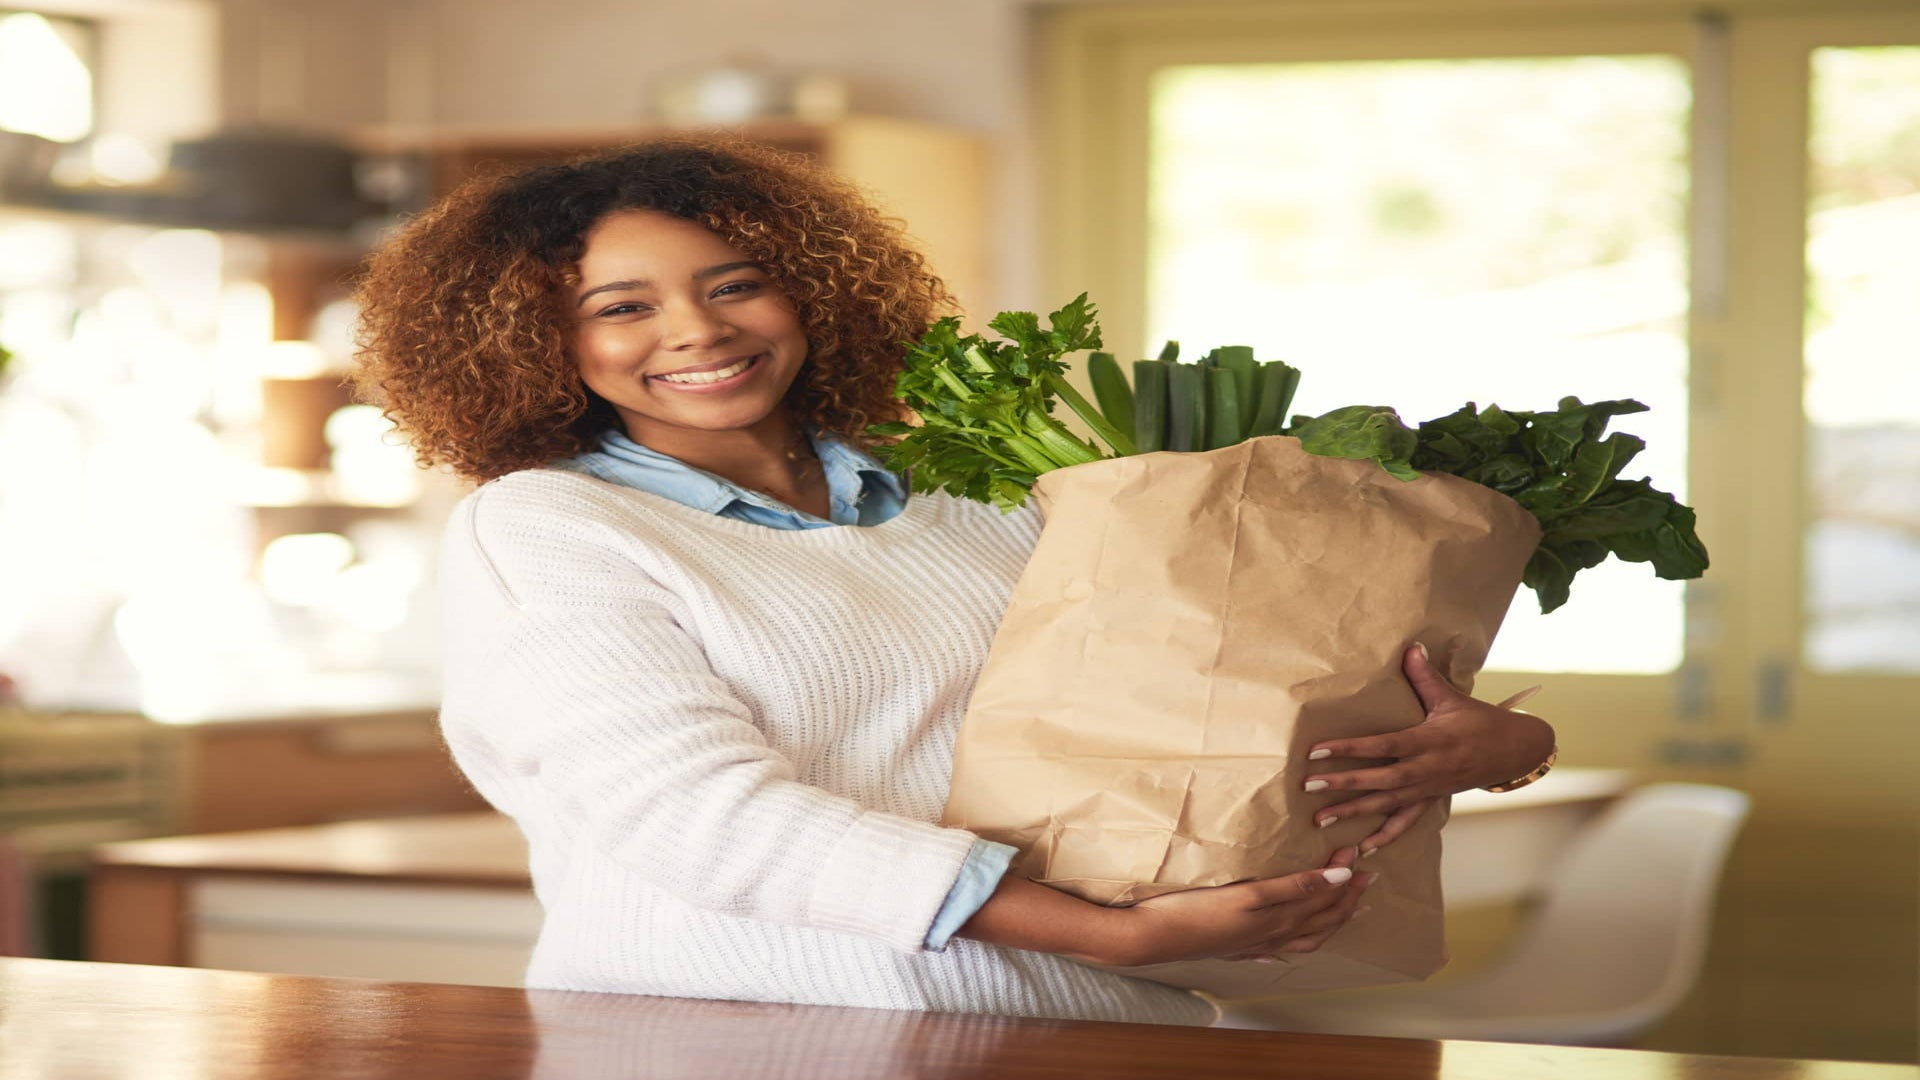 The Upgrade: 3 Grocery Delivery Services That Help Make Adulting Easier